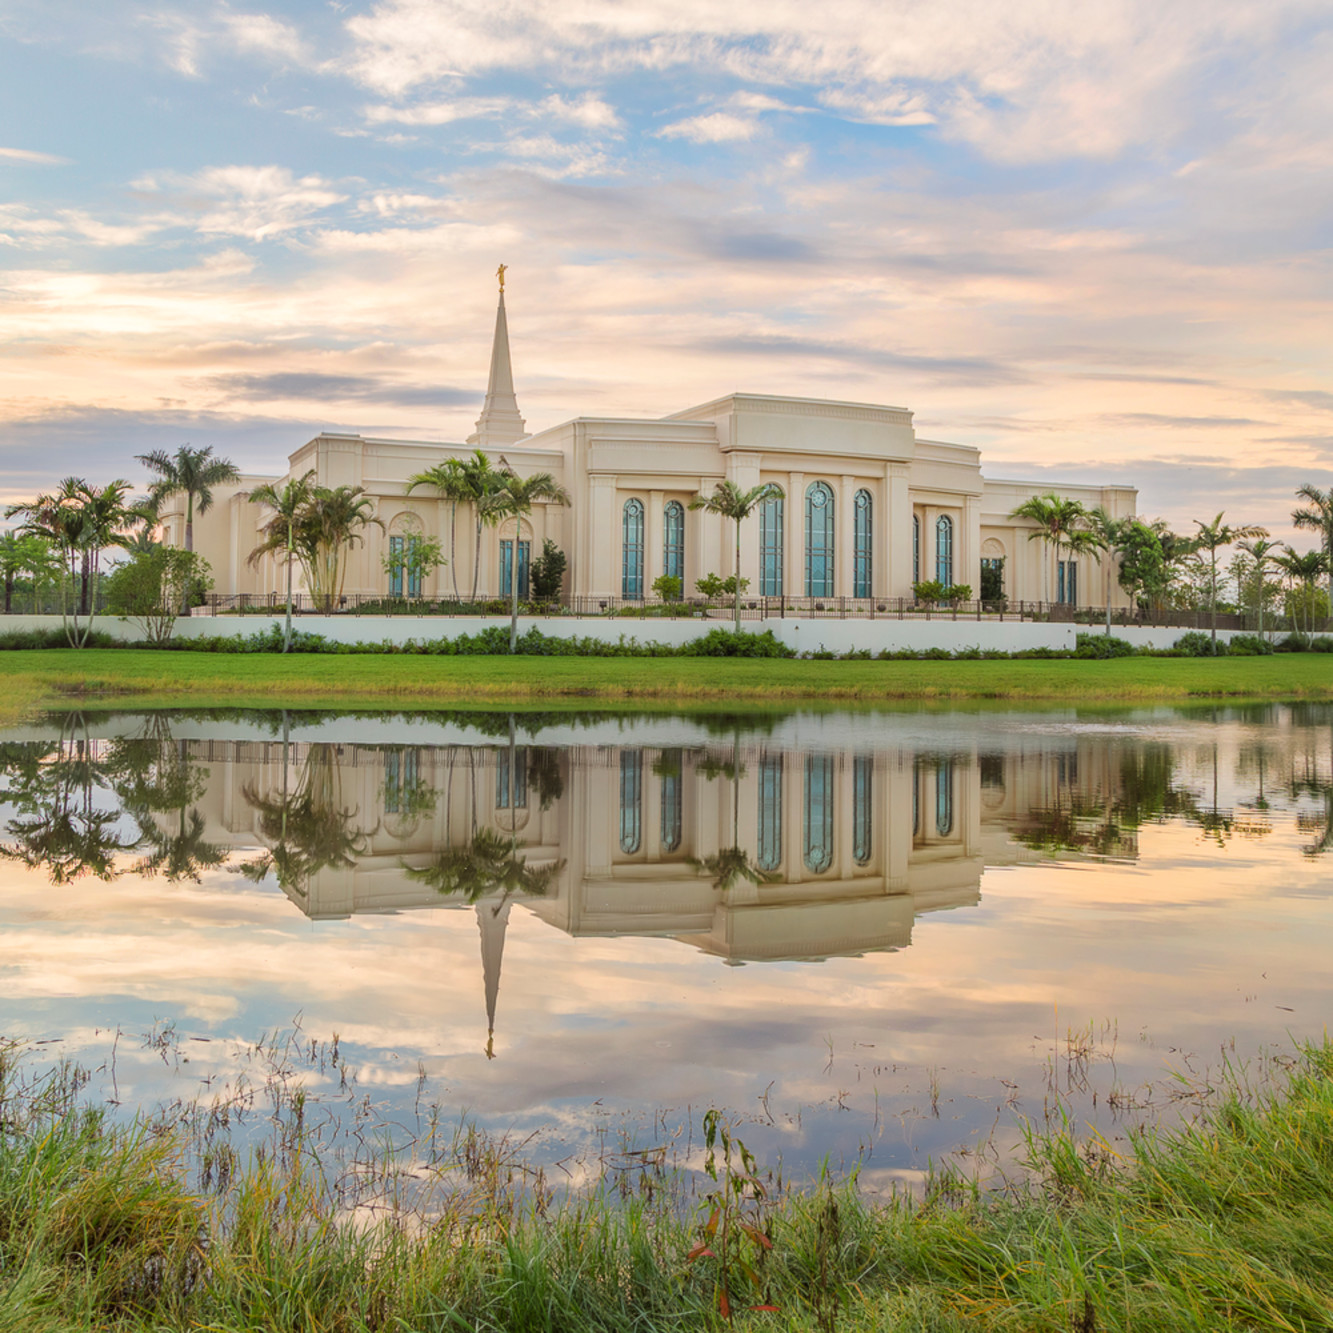 Robert a boyd fort lauderdale temple reflection pond bvbbff